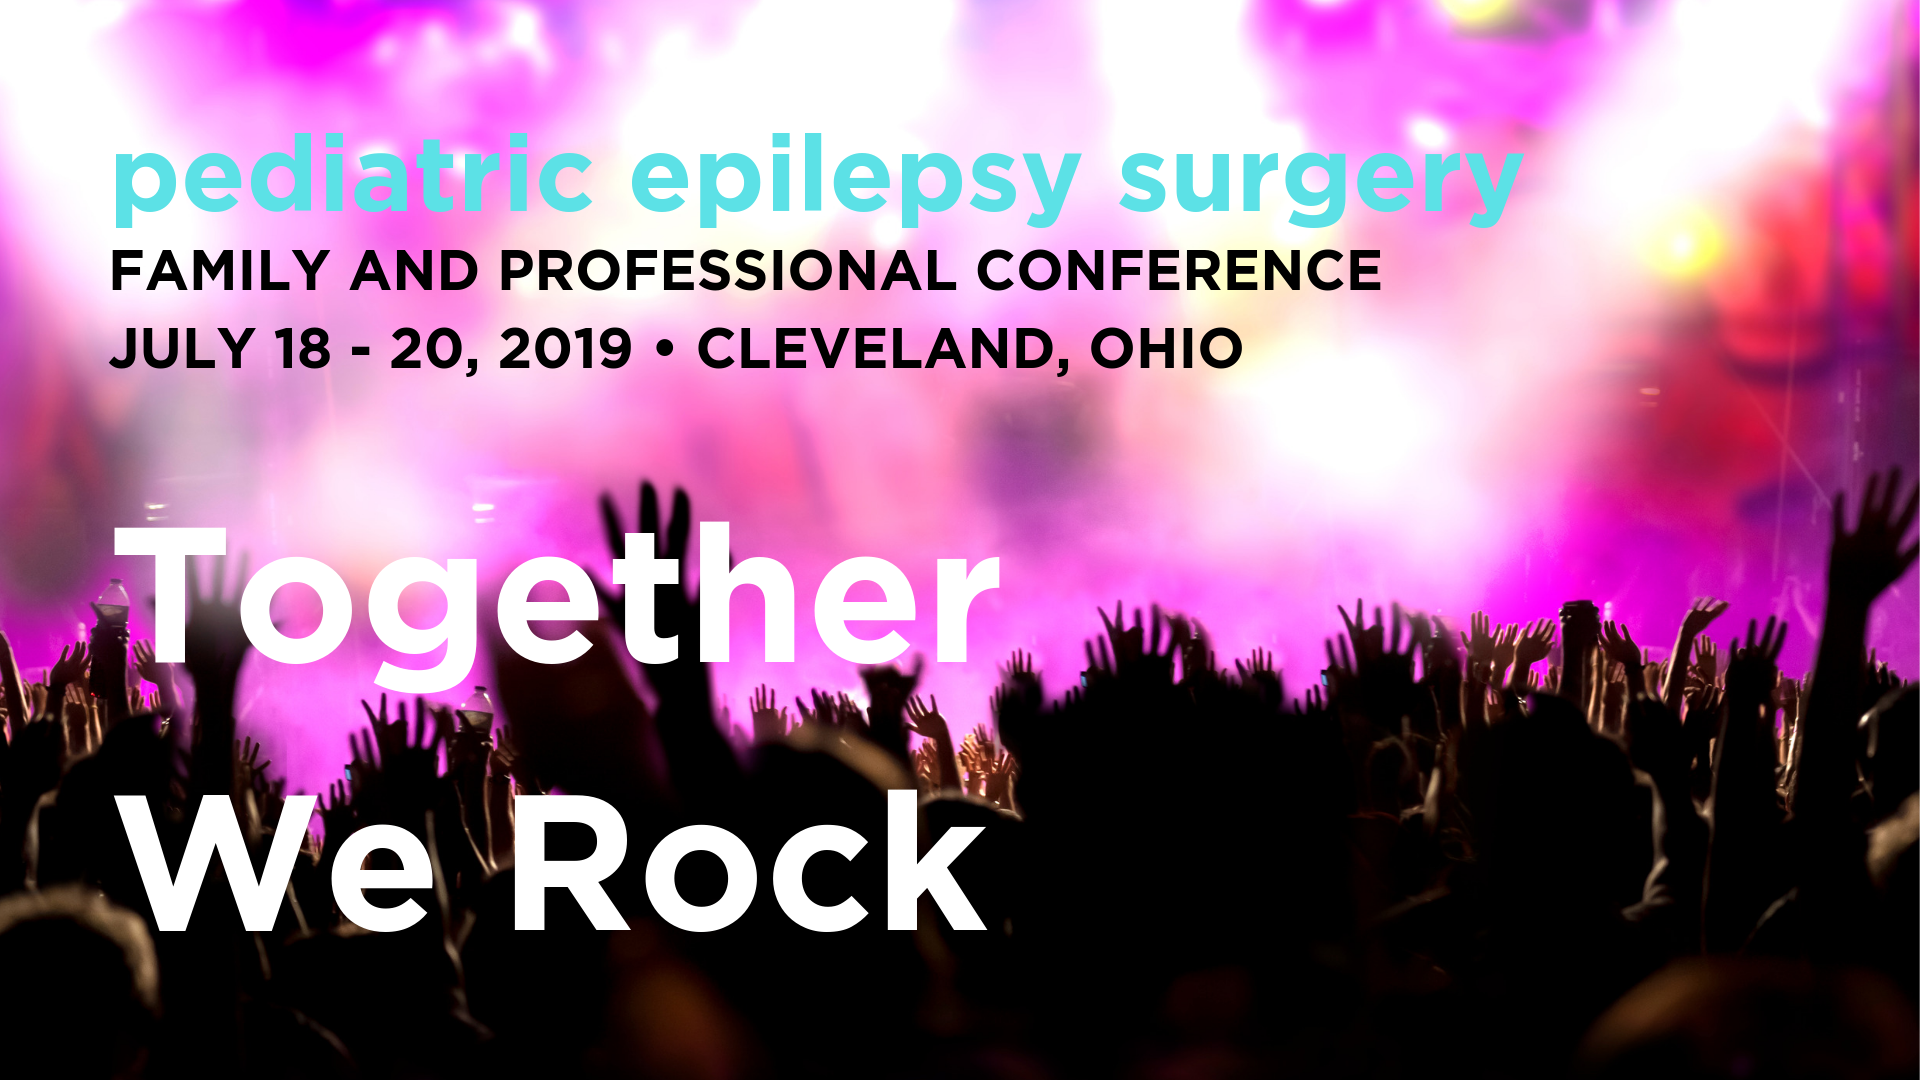 2019 Family and Professional Conference • The Brain Recovery Project